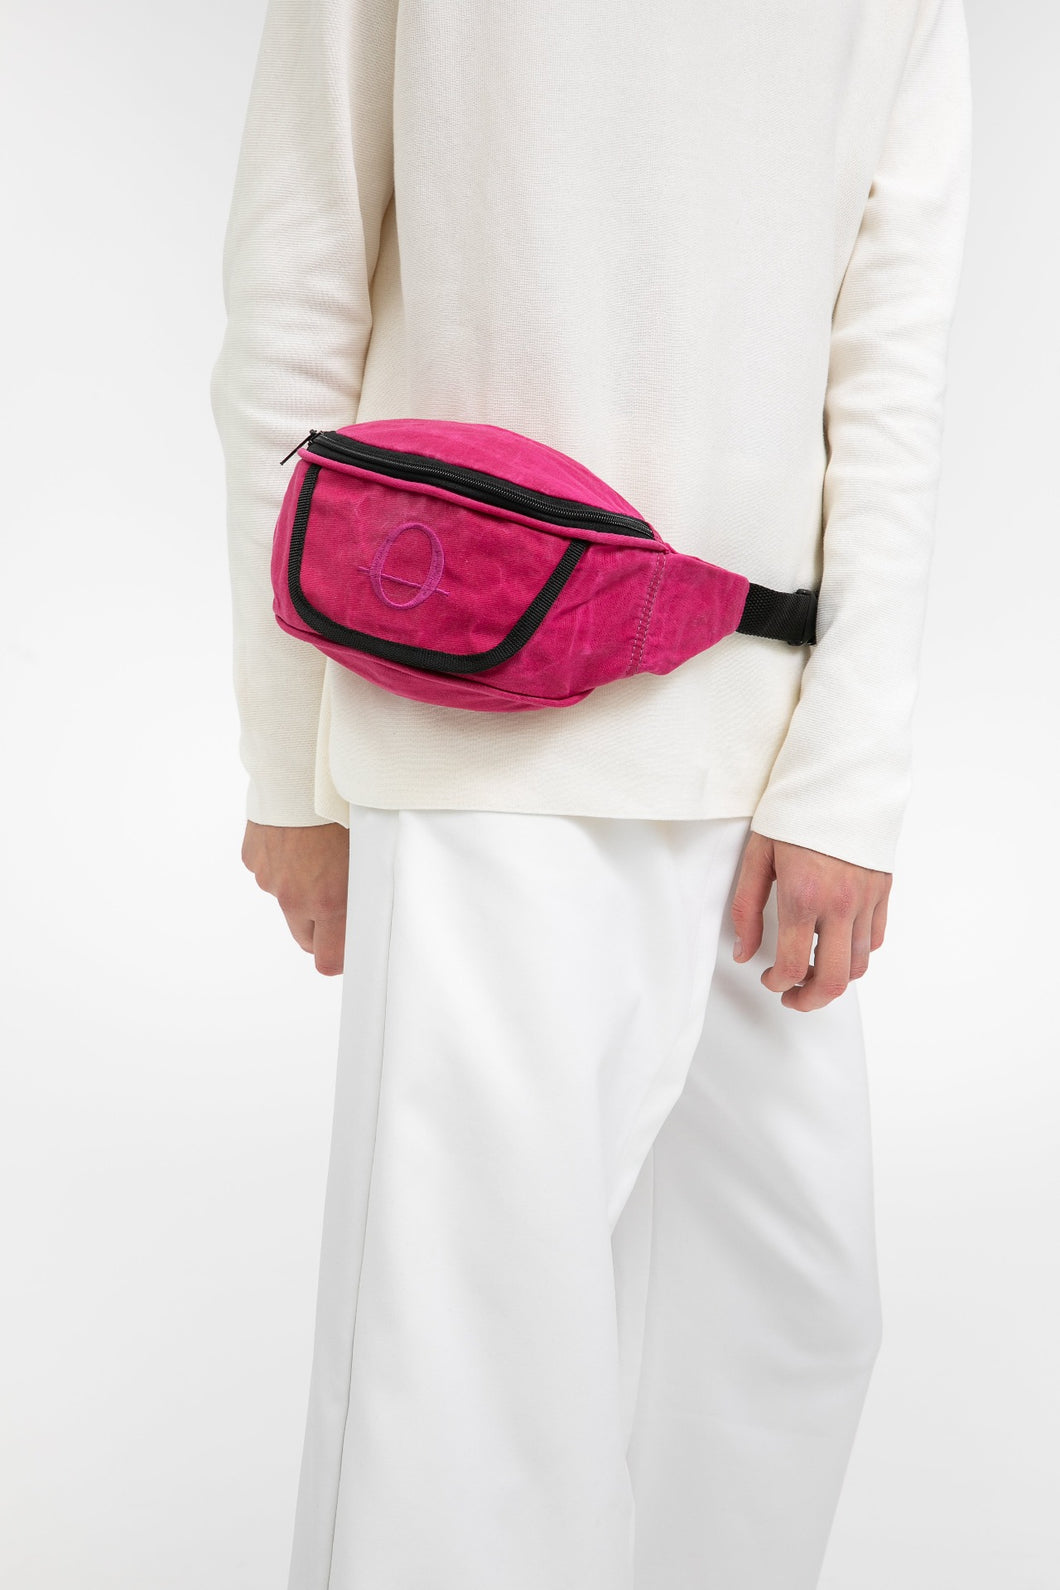 Deptford pink beeswaxed cotton bum bag with pink logo